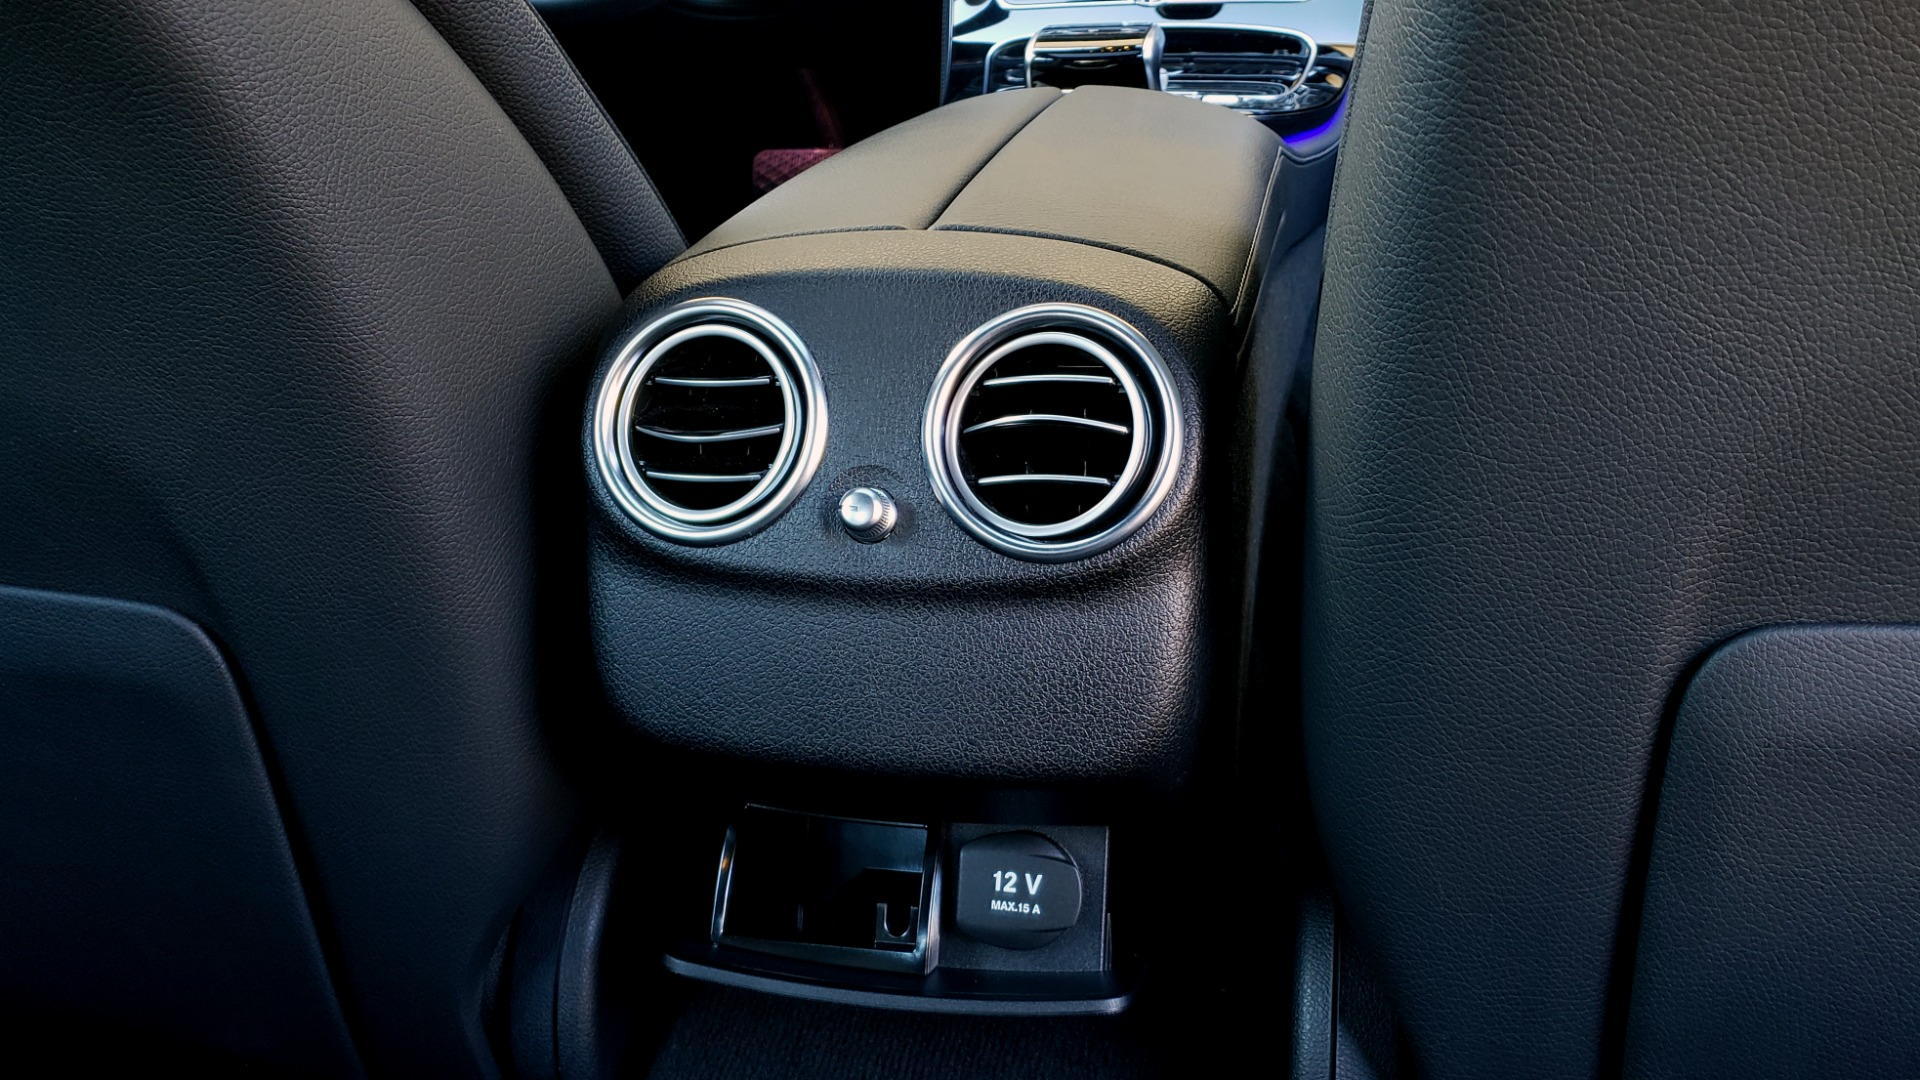 Used 2017 Mercedes-Benz E-CLASS E 300 PREMIUM / NAV / SUNROOF / BURMESTER / HTD STS / REARVIEW for sale $29,995 at Formula Imports in Charlotte NC 28227 77